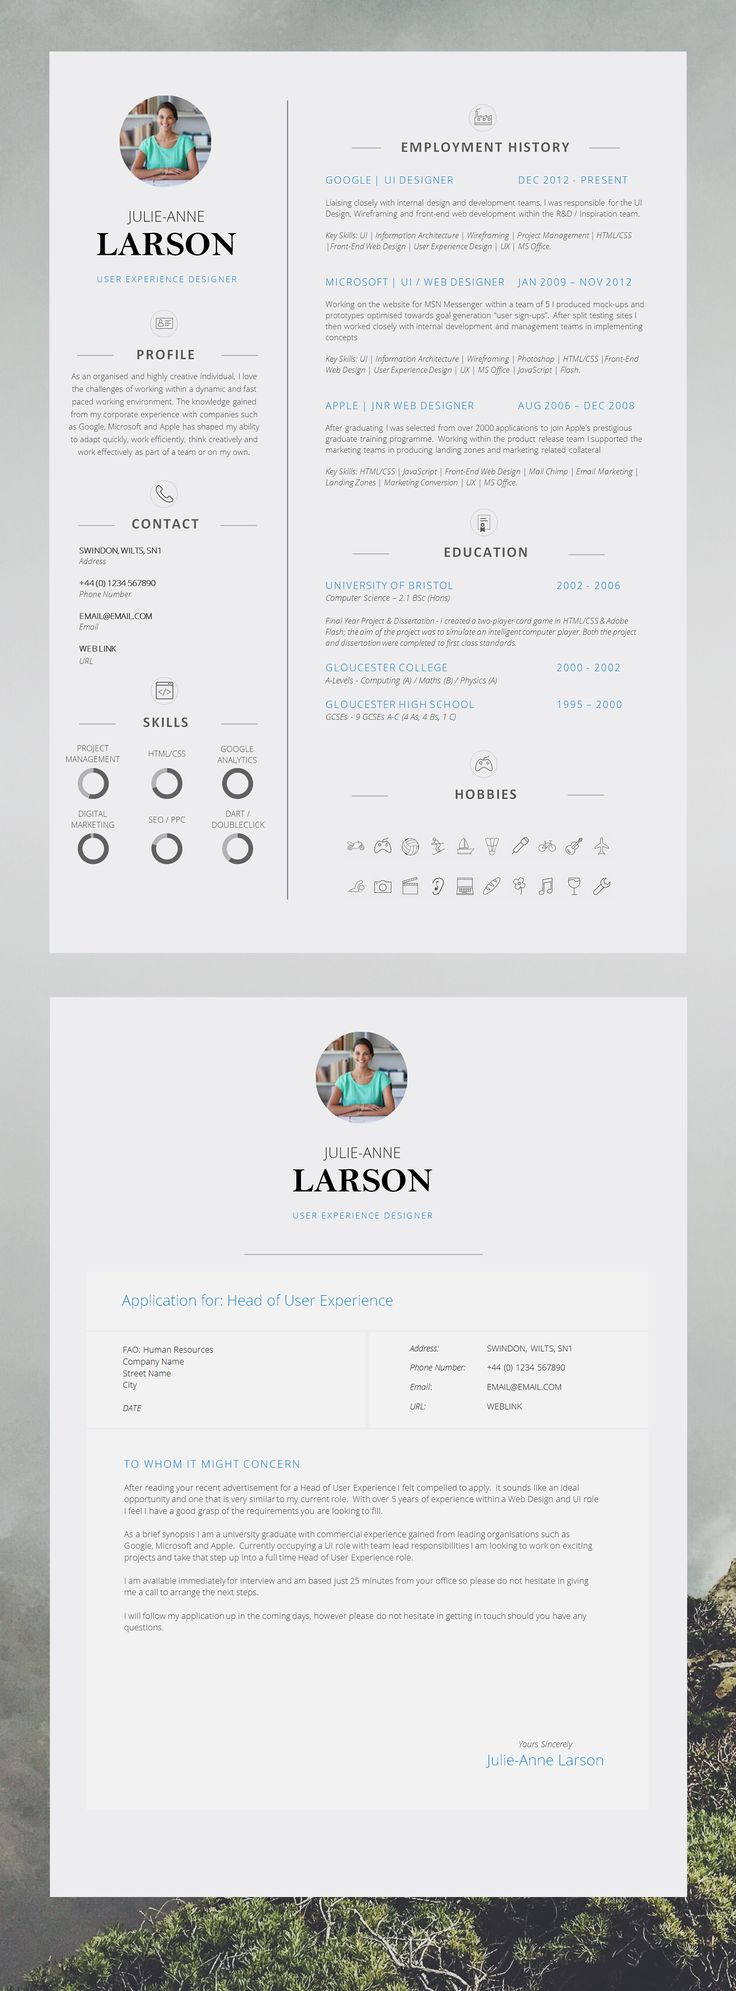 8 Best Cv Images On Pinterest Design Resume Resume Cv And